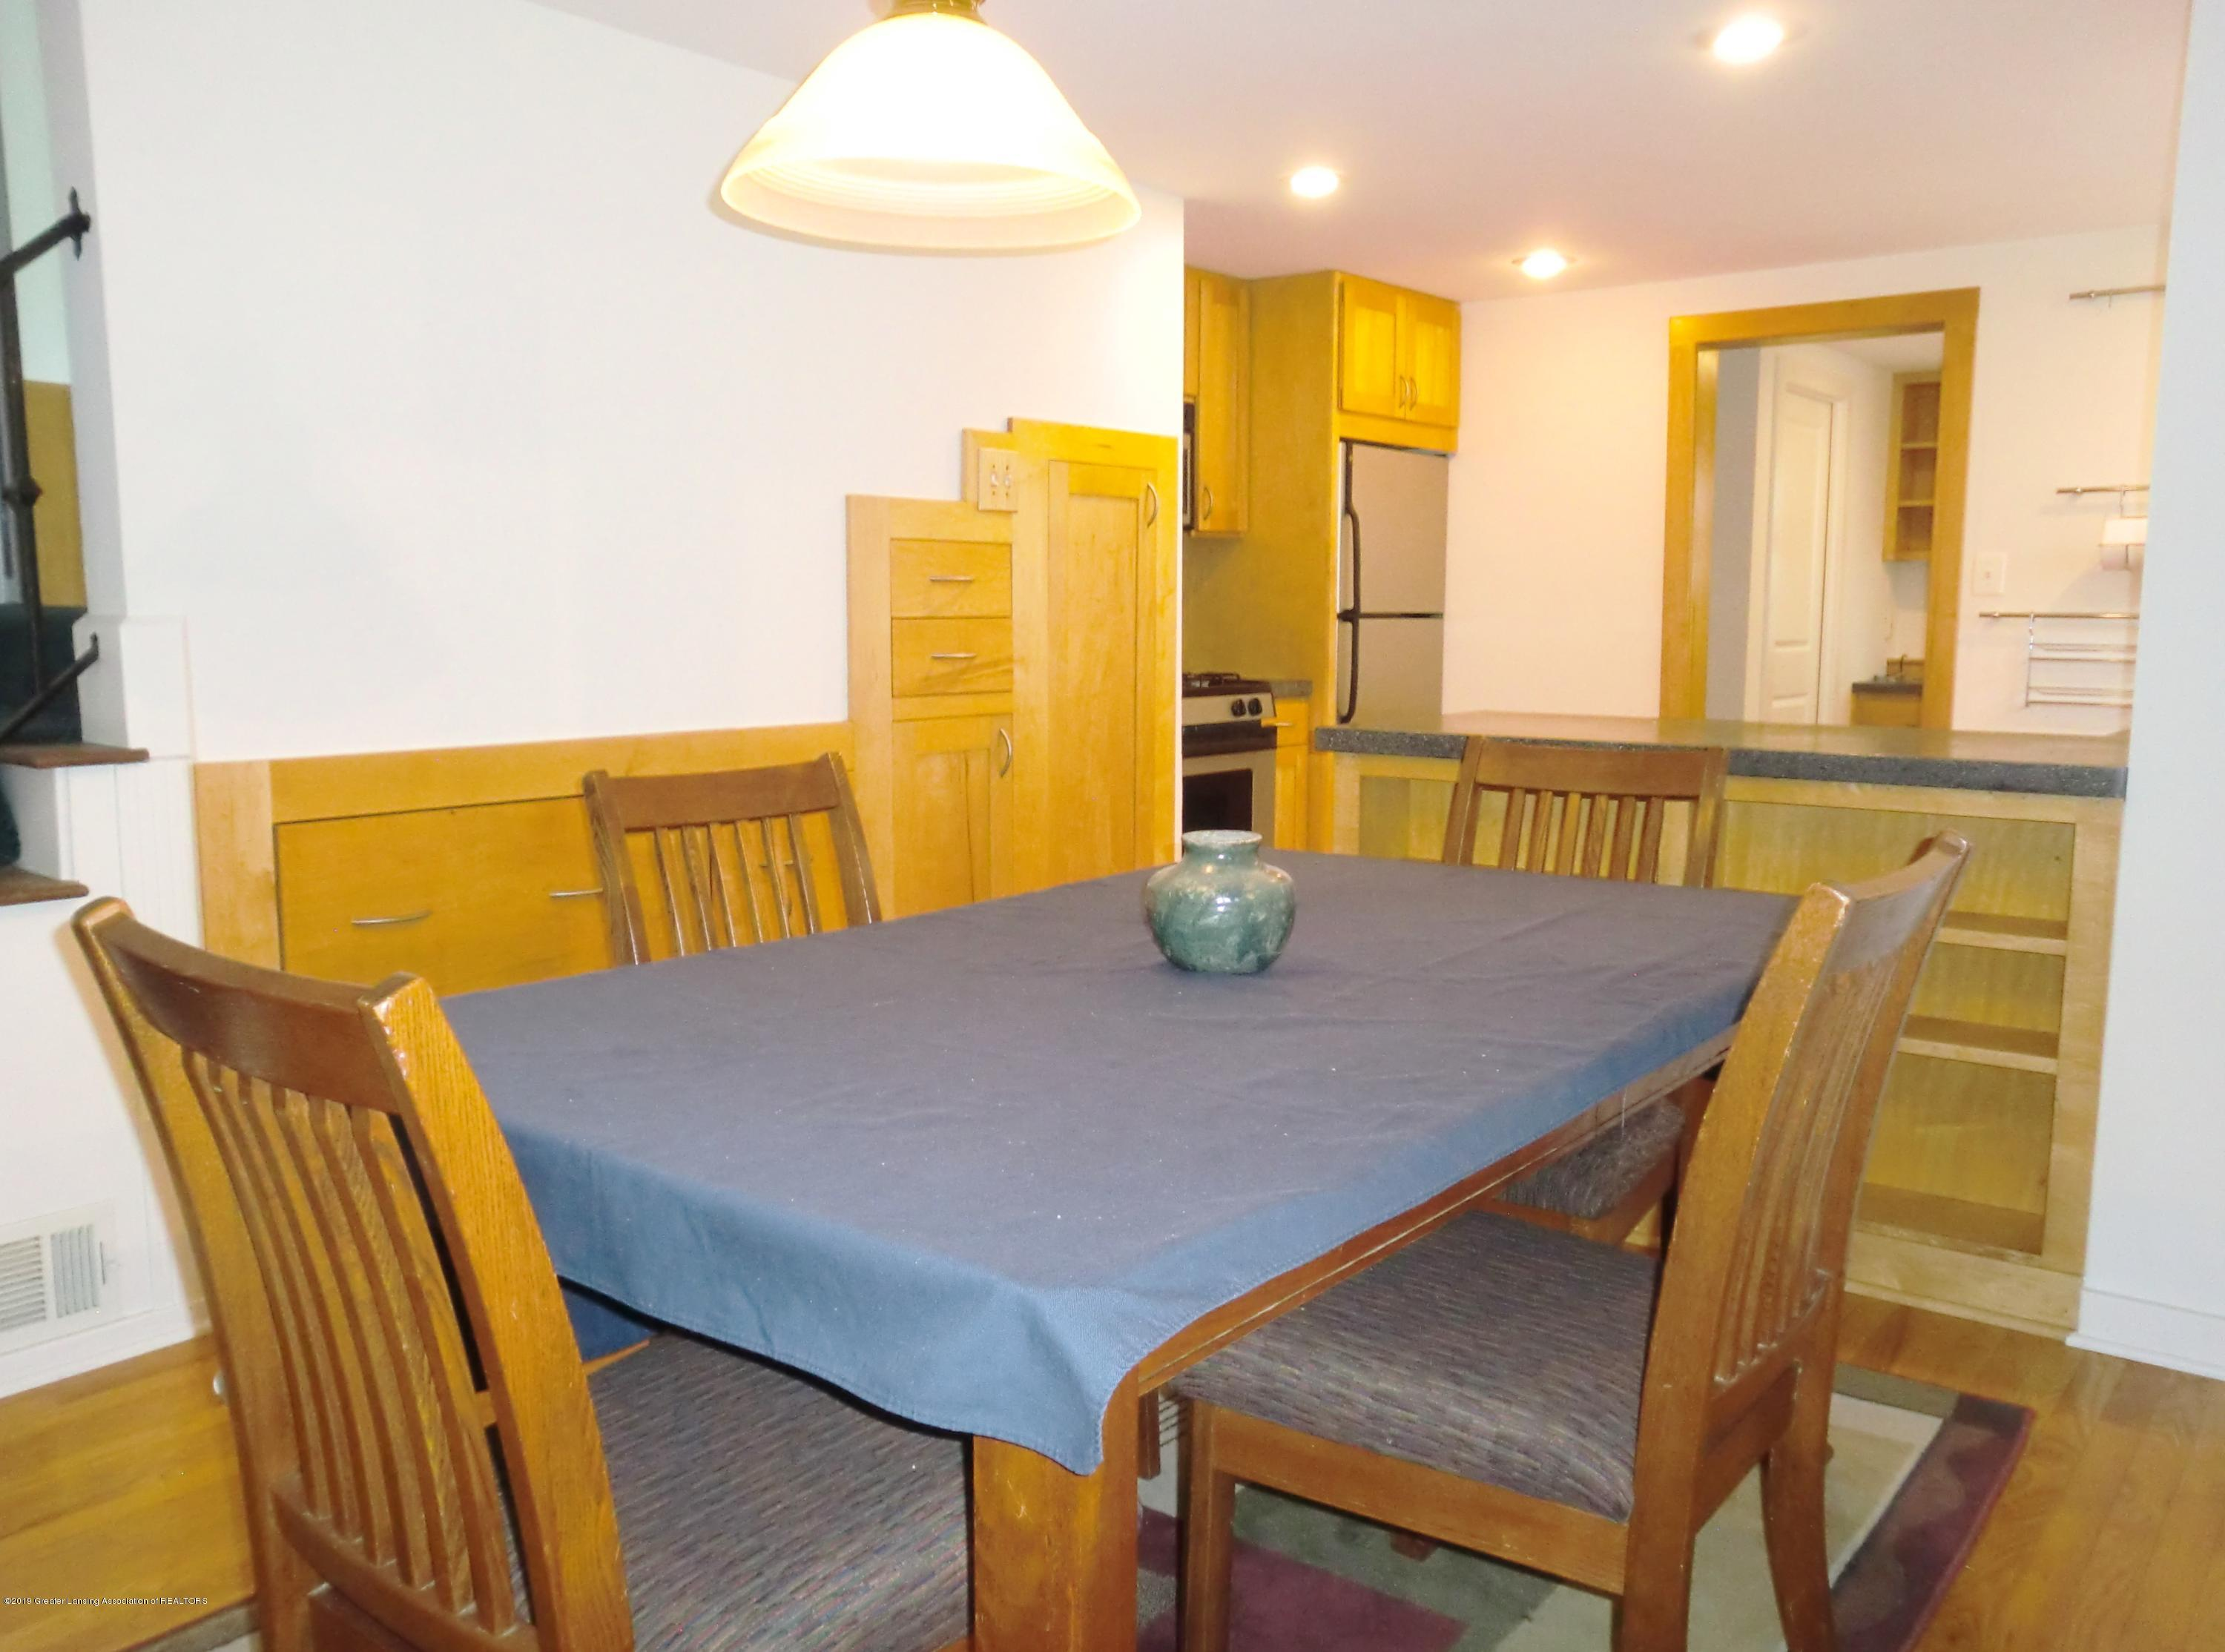 704 Beech St - Dining/Kitchen View - 8